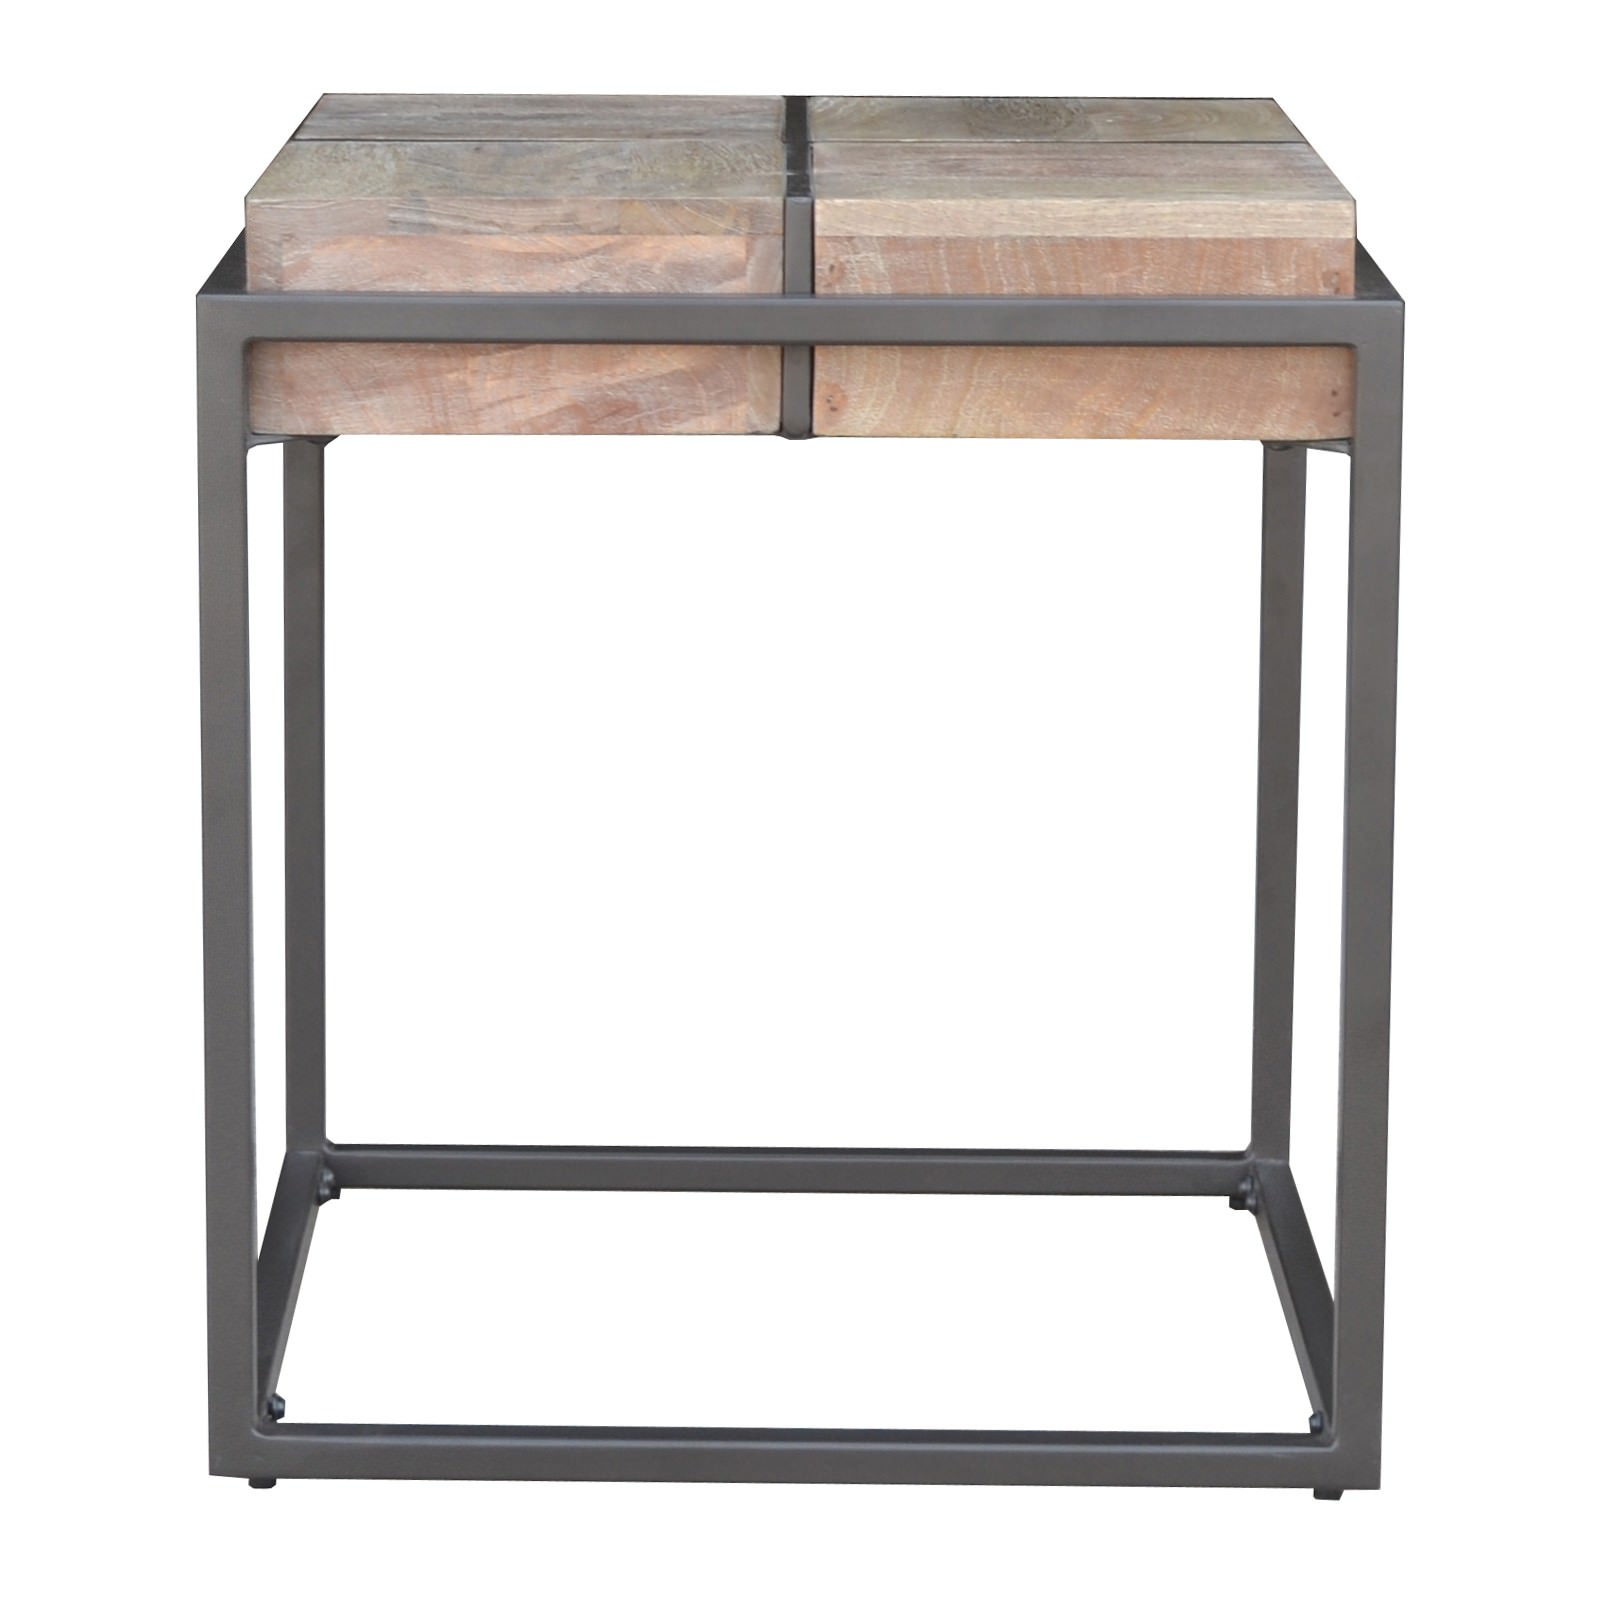 Ampuis Mango Wood & Metal Square Side Table